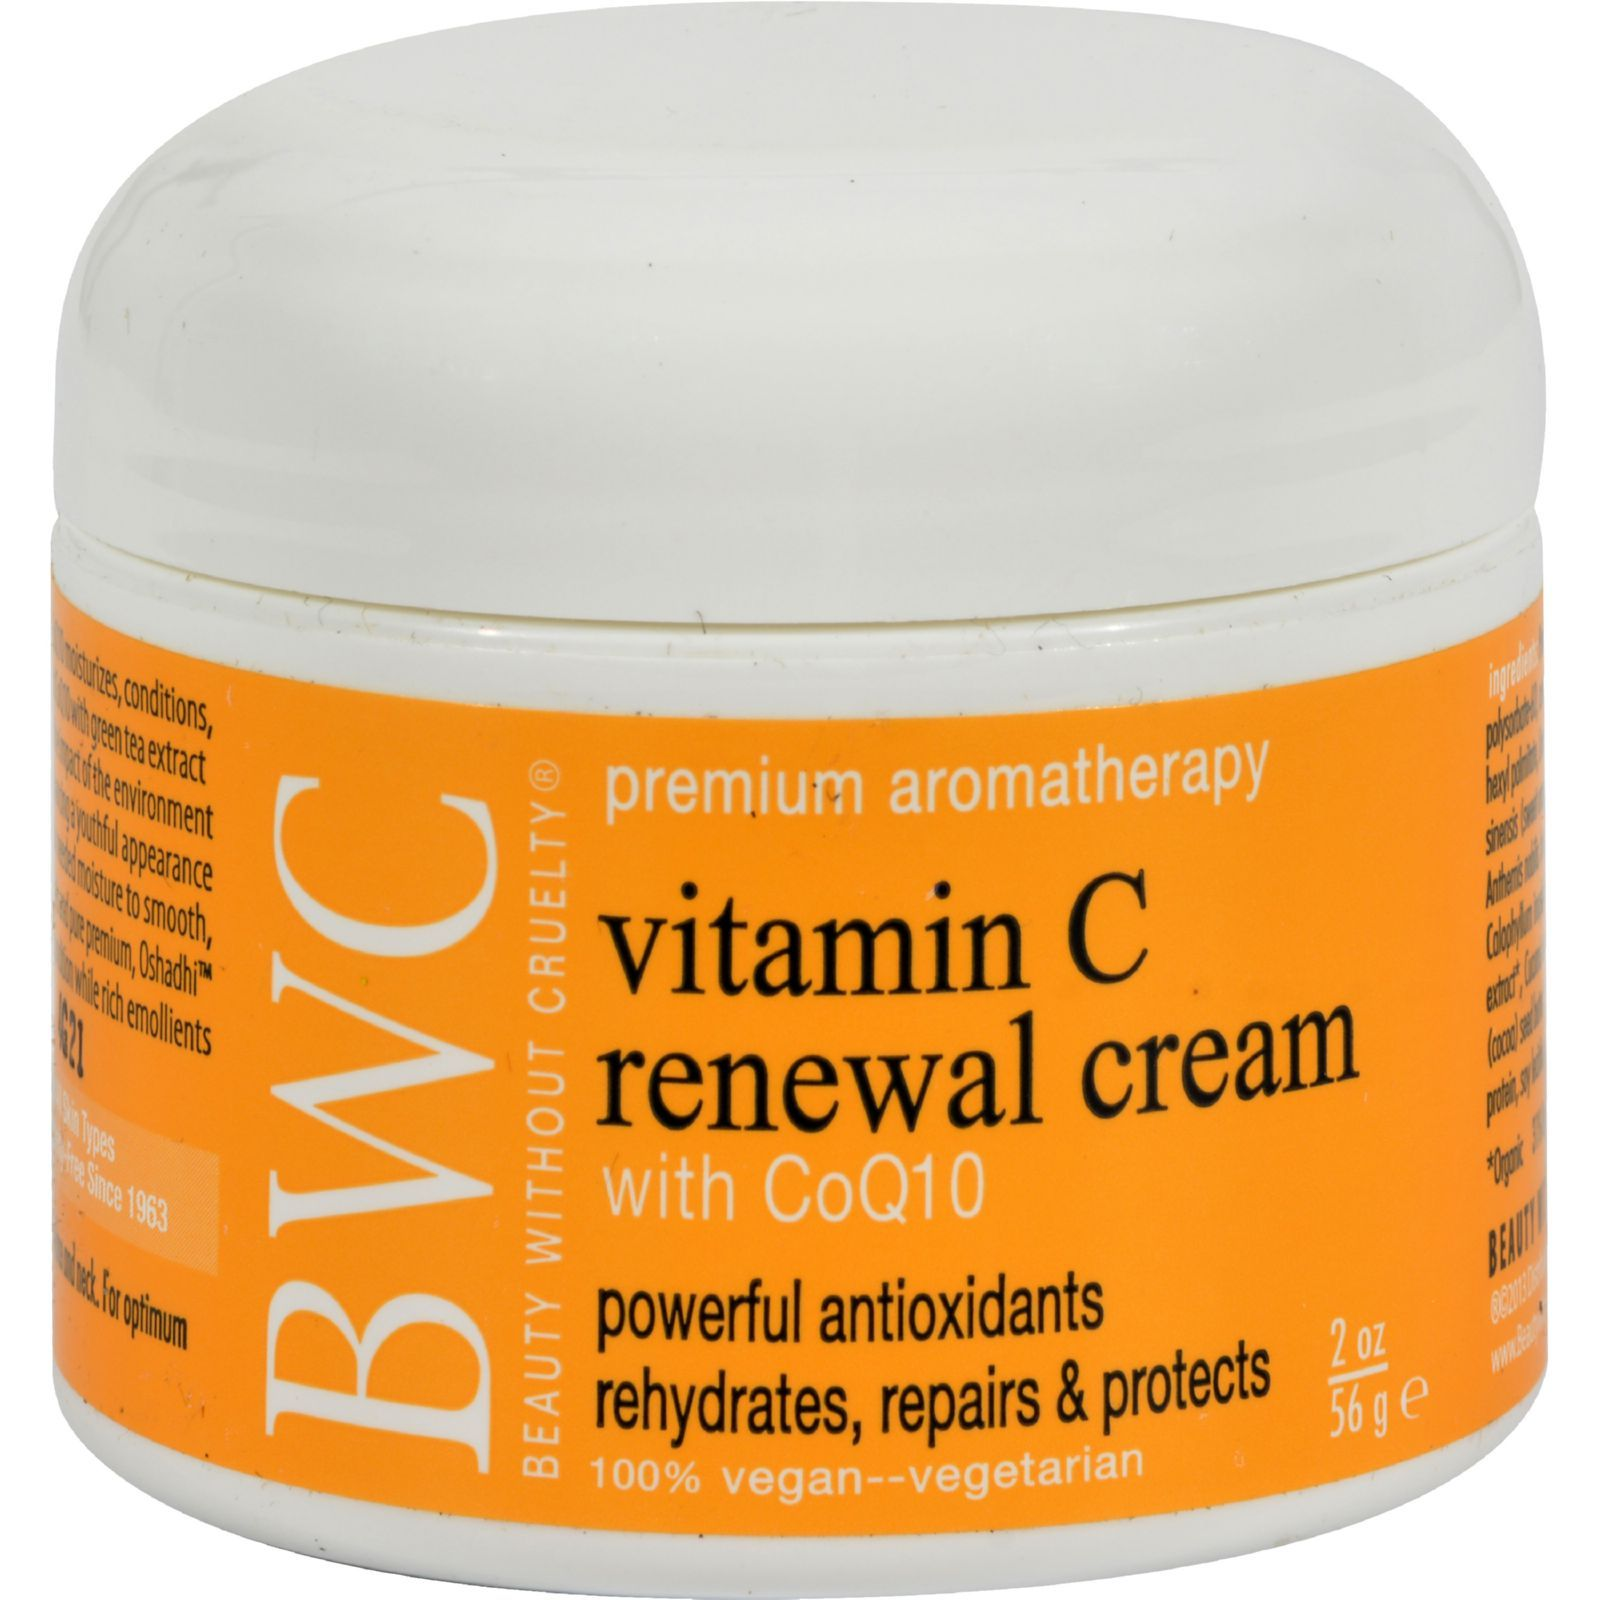 Beauty Without Cruelty Renewal Cream Vitamin C With Coq10 - 2 Oz - BeeGreen